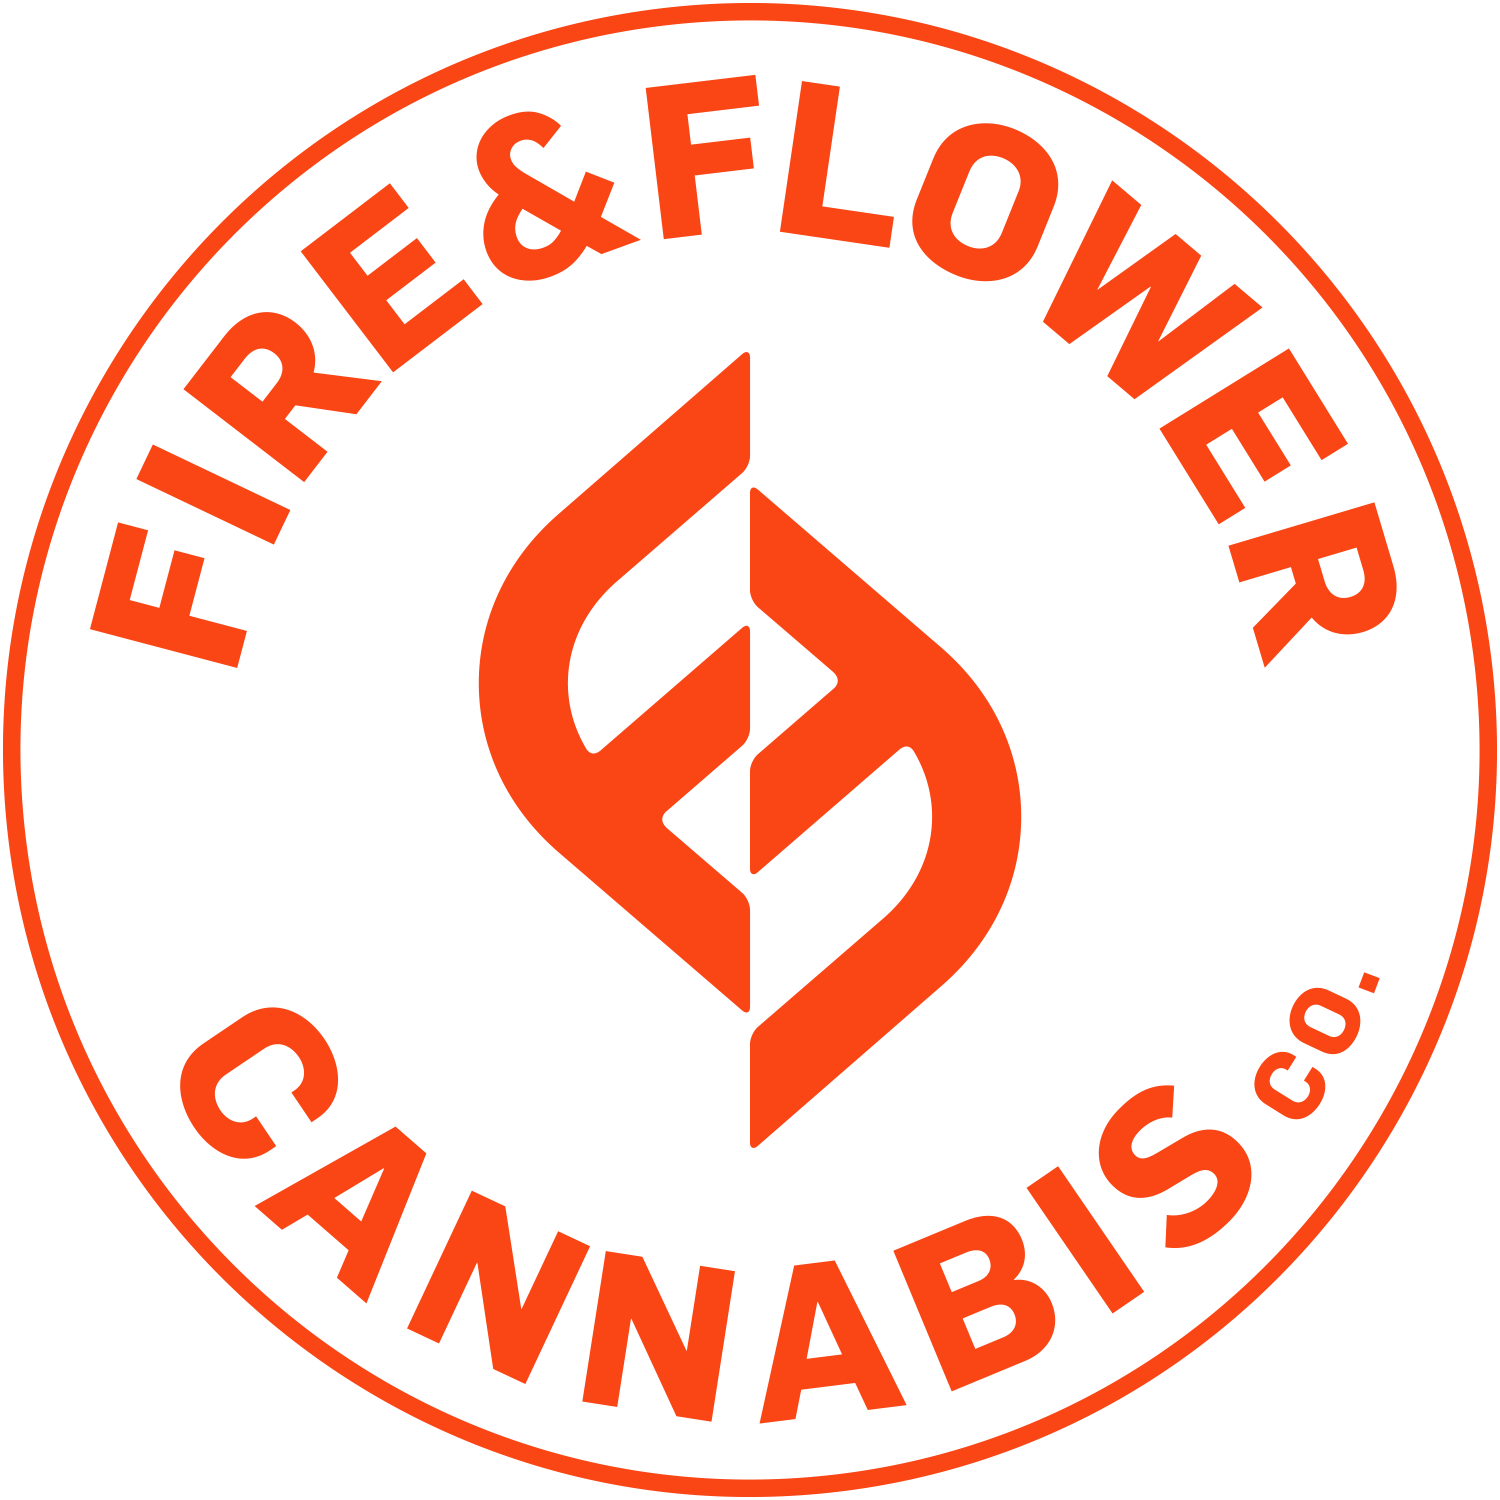 Fire & Flower Cannabis Co. - 9610 165 Avenue NW | Store